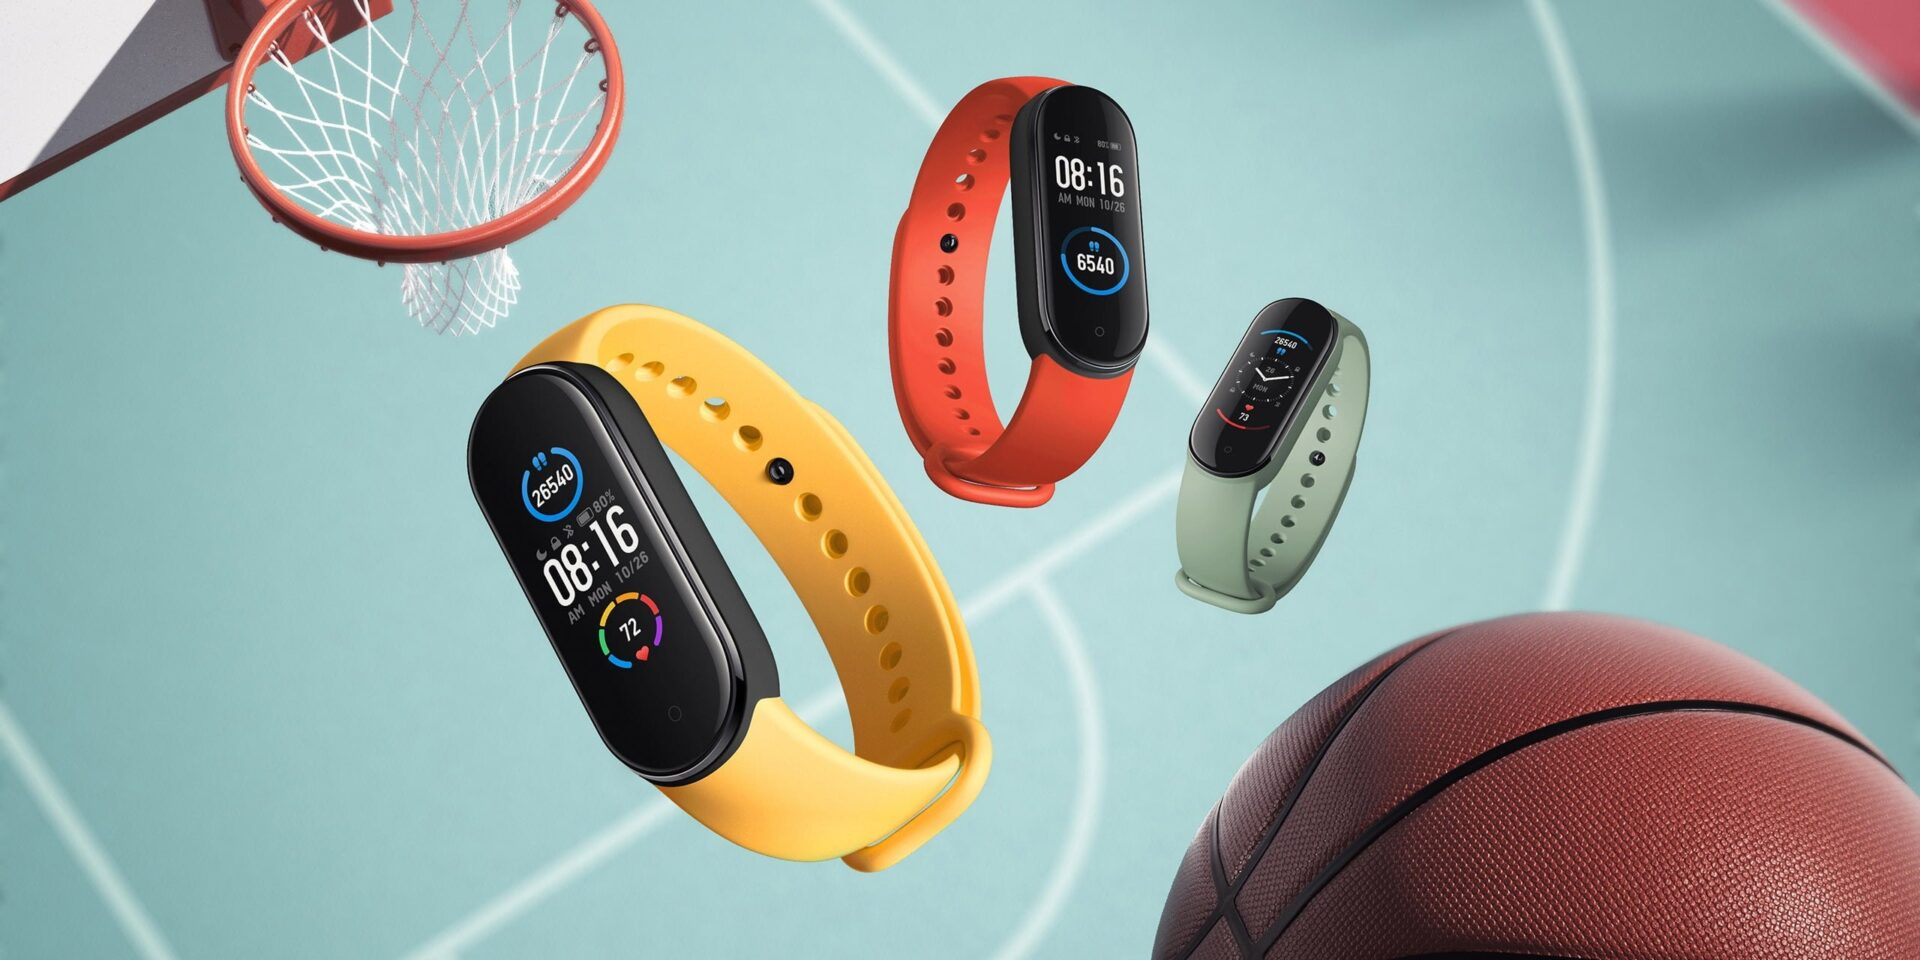 xiaomi mi smart band 5 launched in nepal